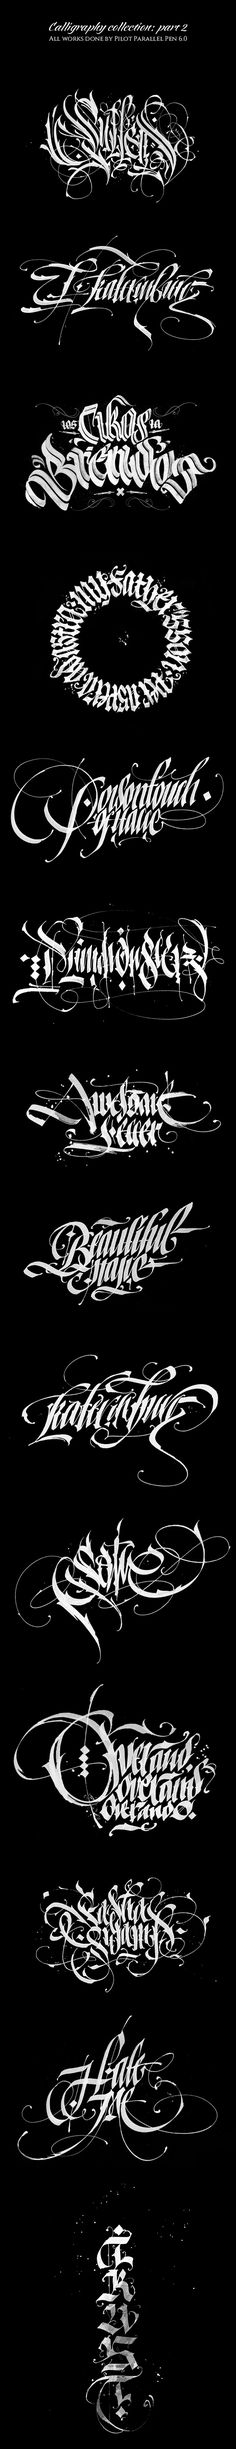 Calligraphy collection by By Pokras Lampas